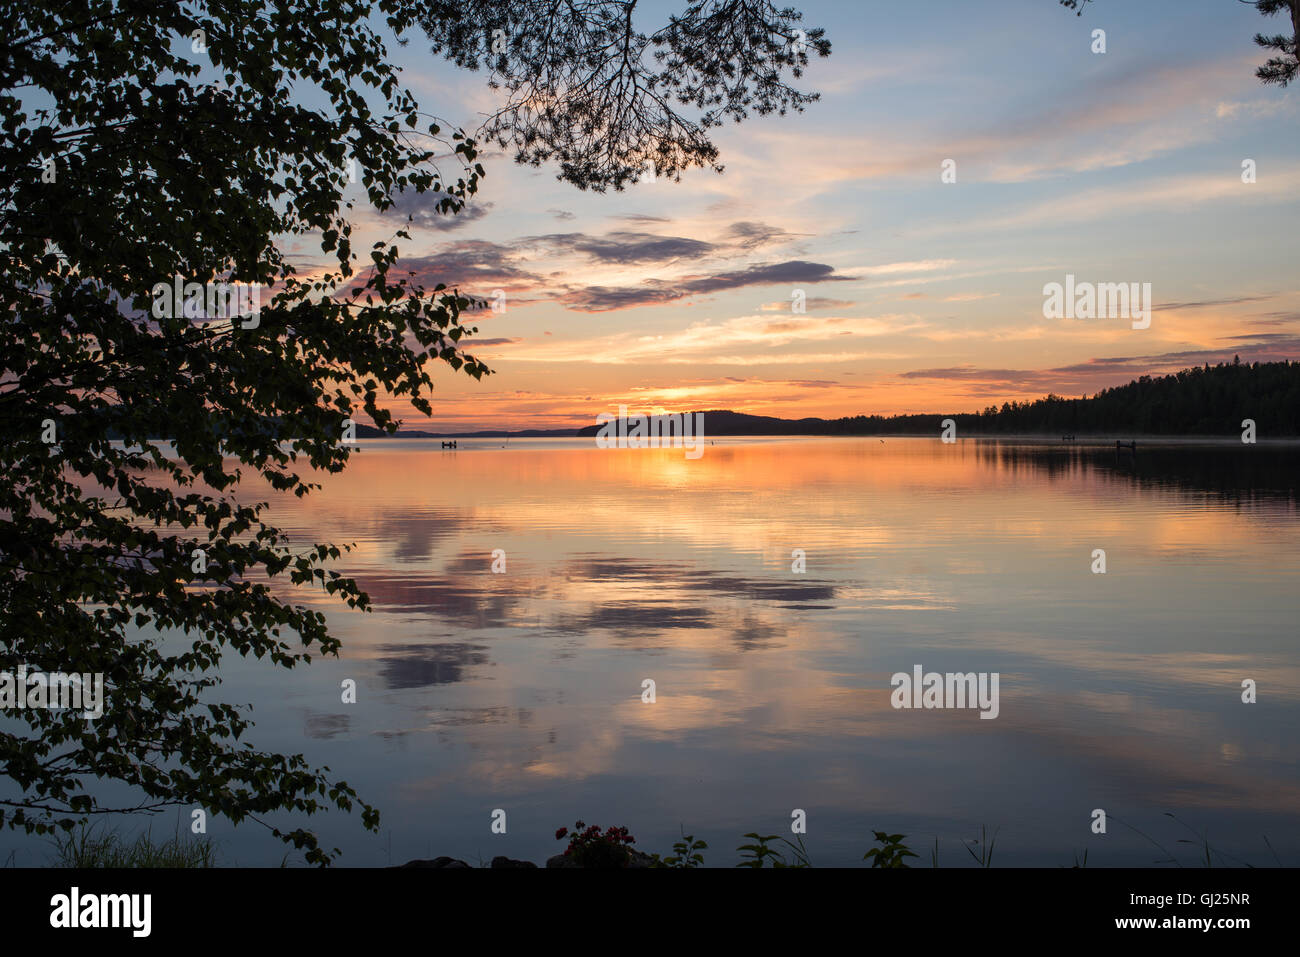 Calm lake at sunset - Stock Image